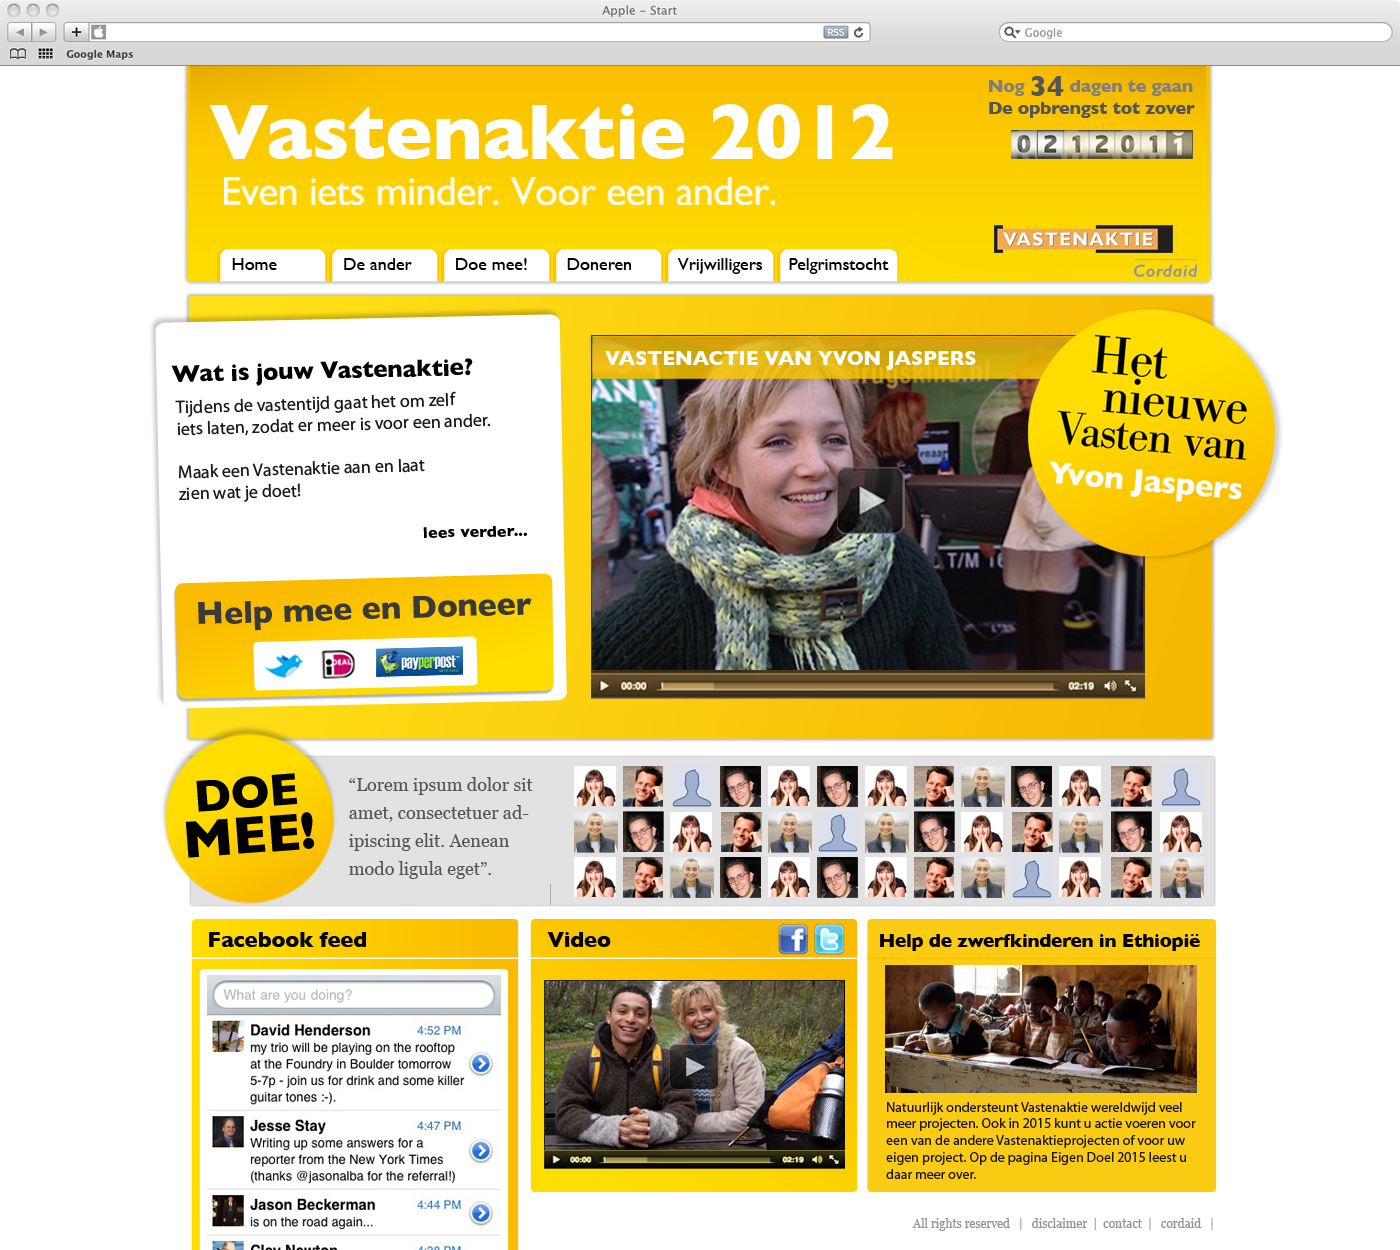 Cordaid Vastenaktie website